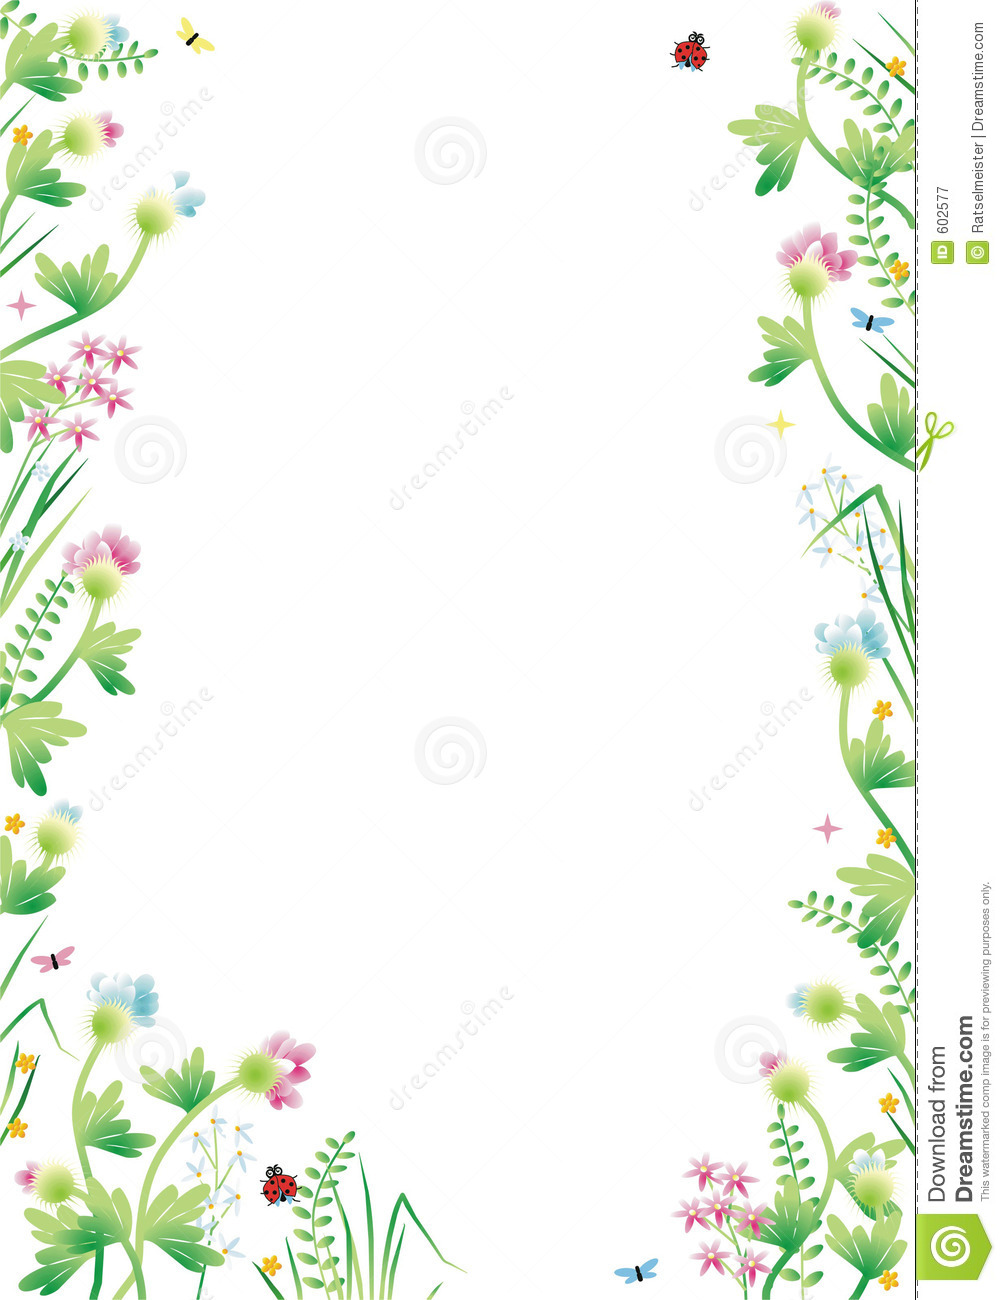 Fantasy Garden Background 3 Royalty Free Stock Photography   Image